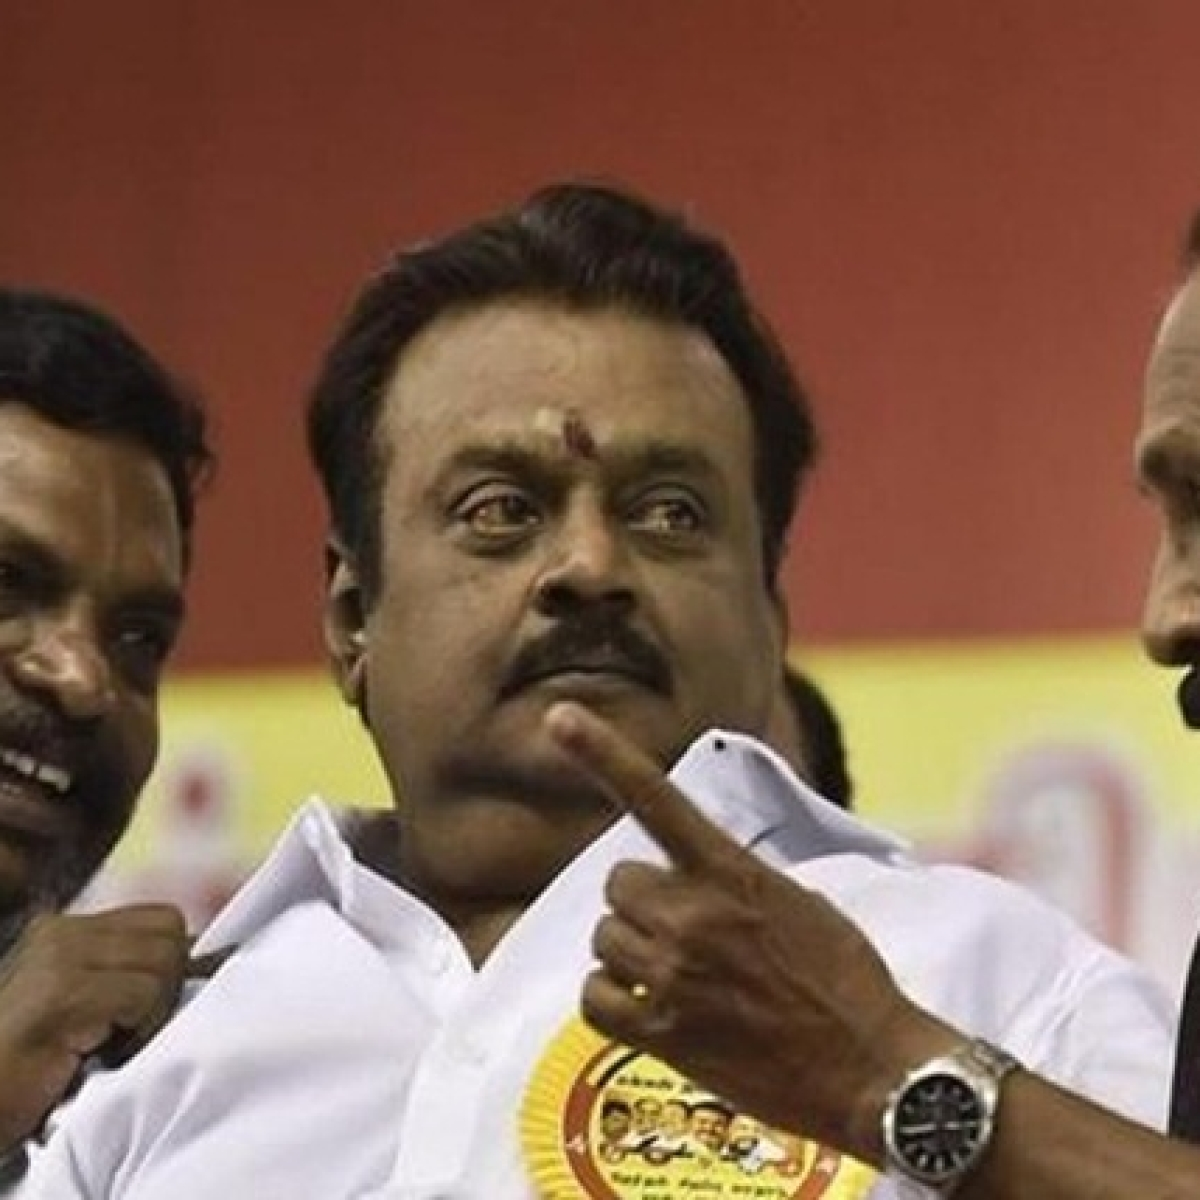 Tamil Nadu elections: Actor Vijayakanth's DMDK quits AIADMK-BJP alliance after differences over allocation of seats